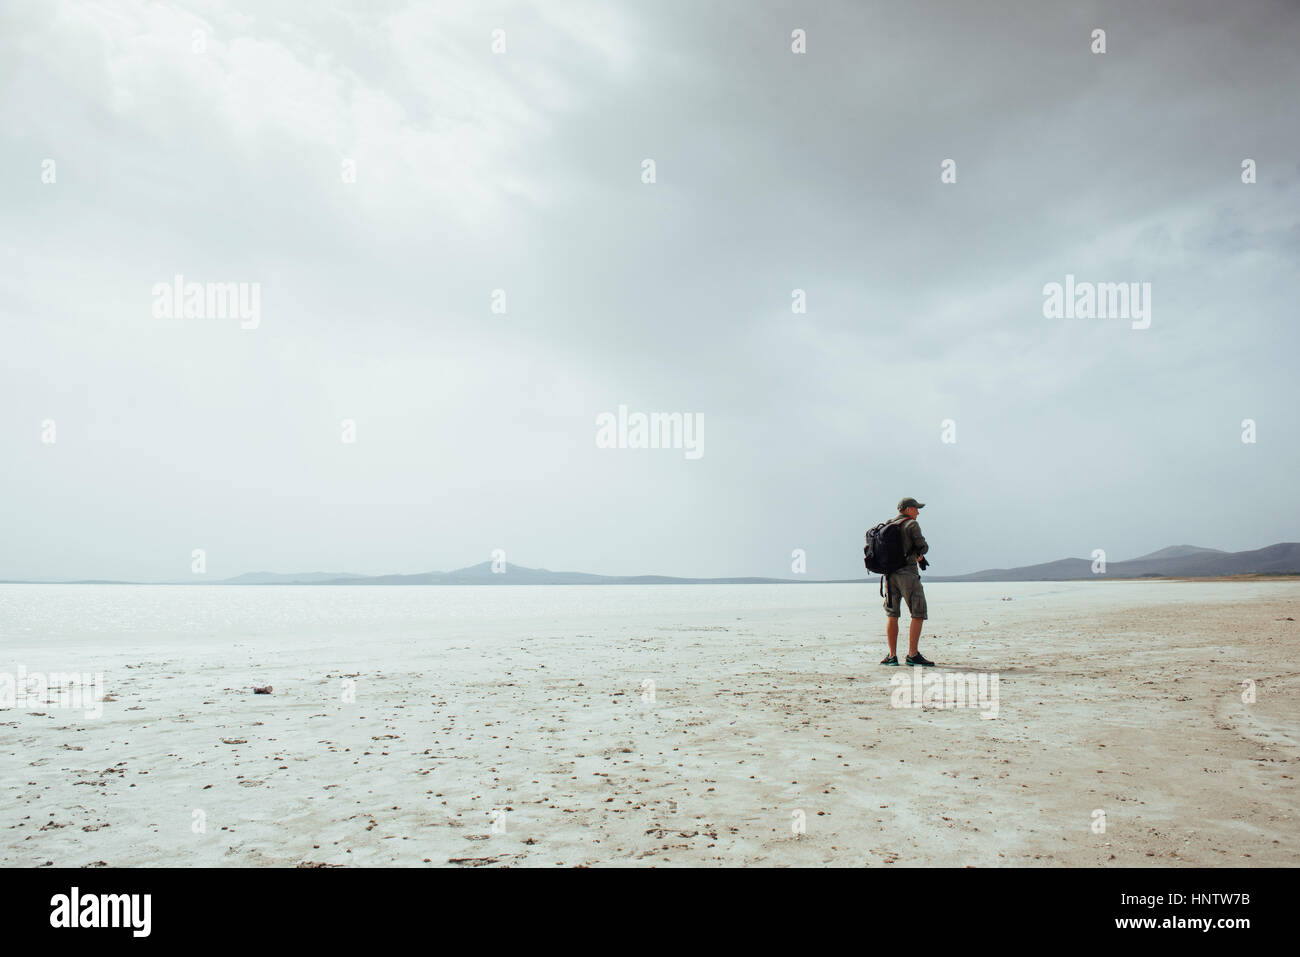 nature travel landscape photographer shoots. Turkey. - Stock Image